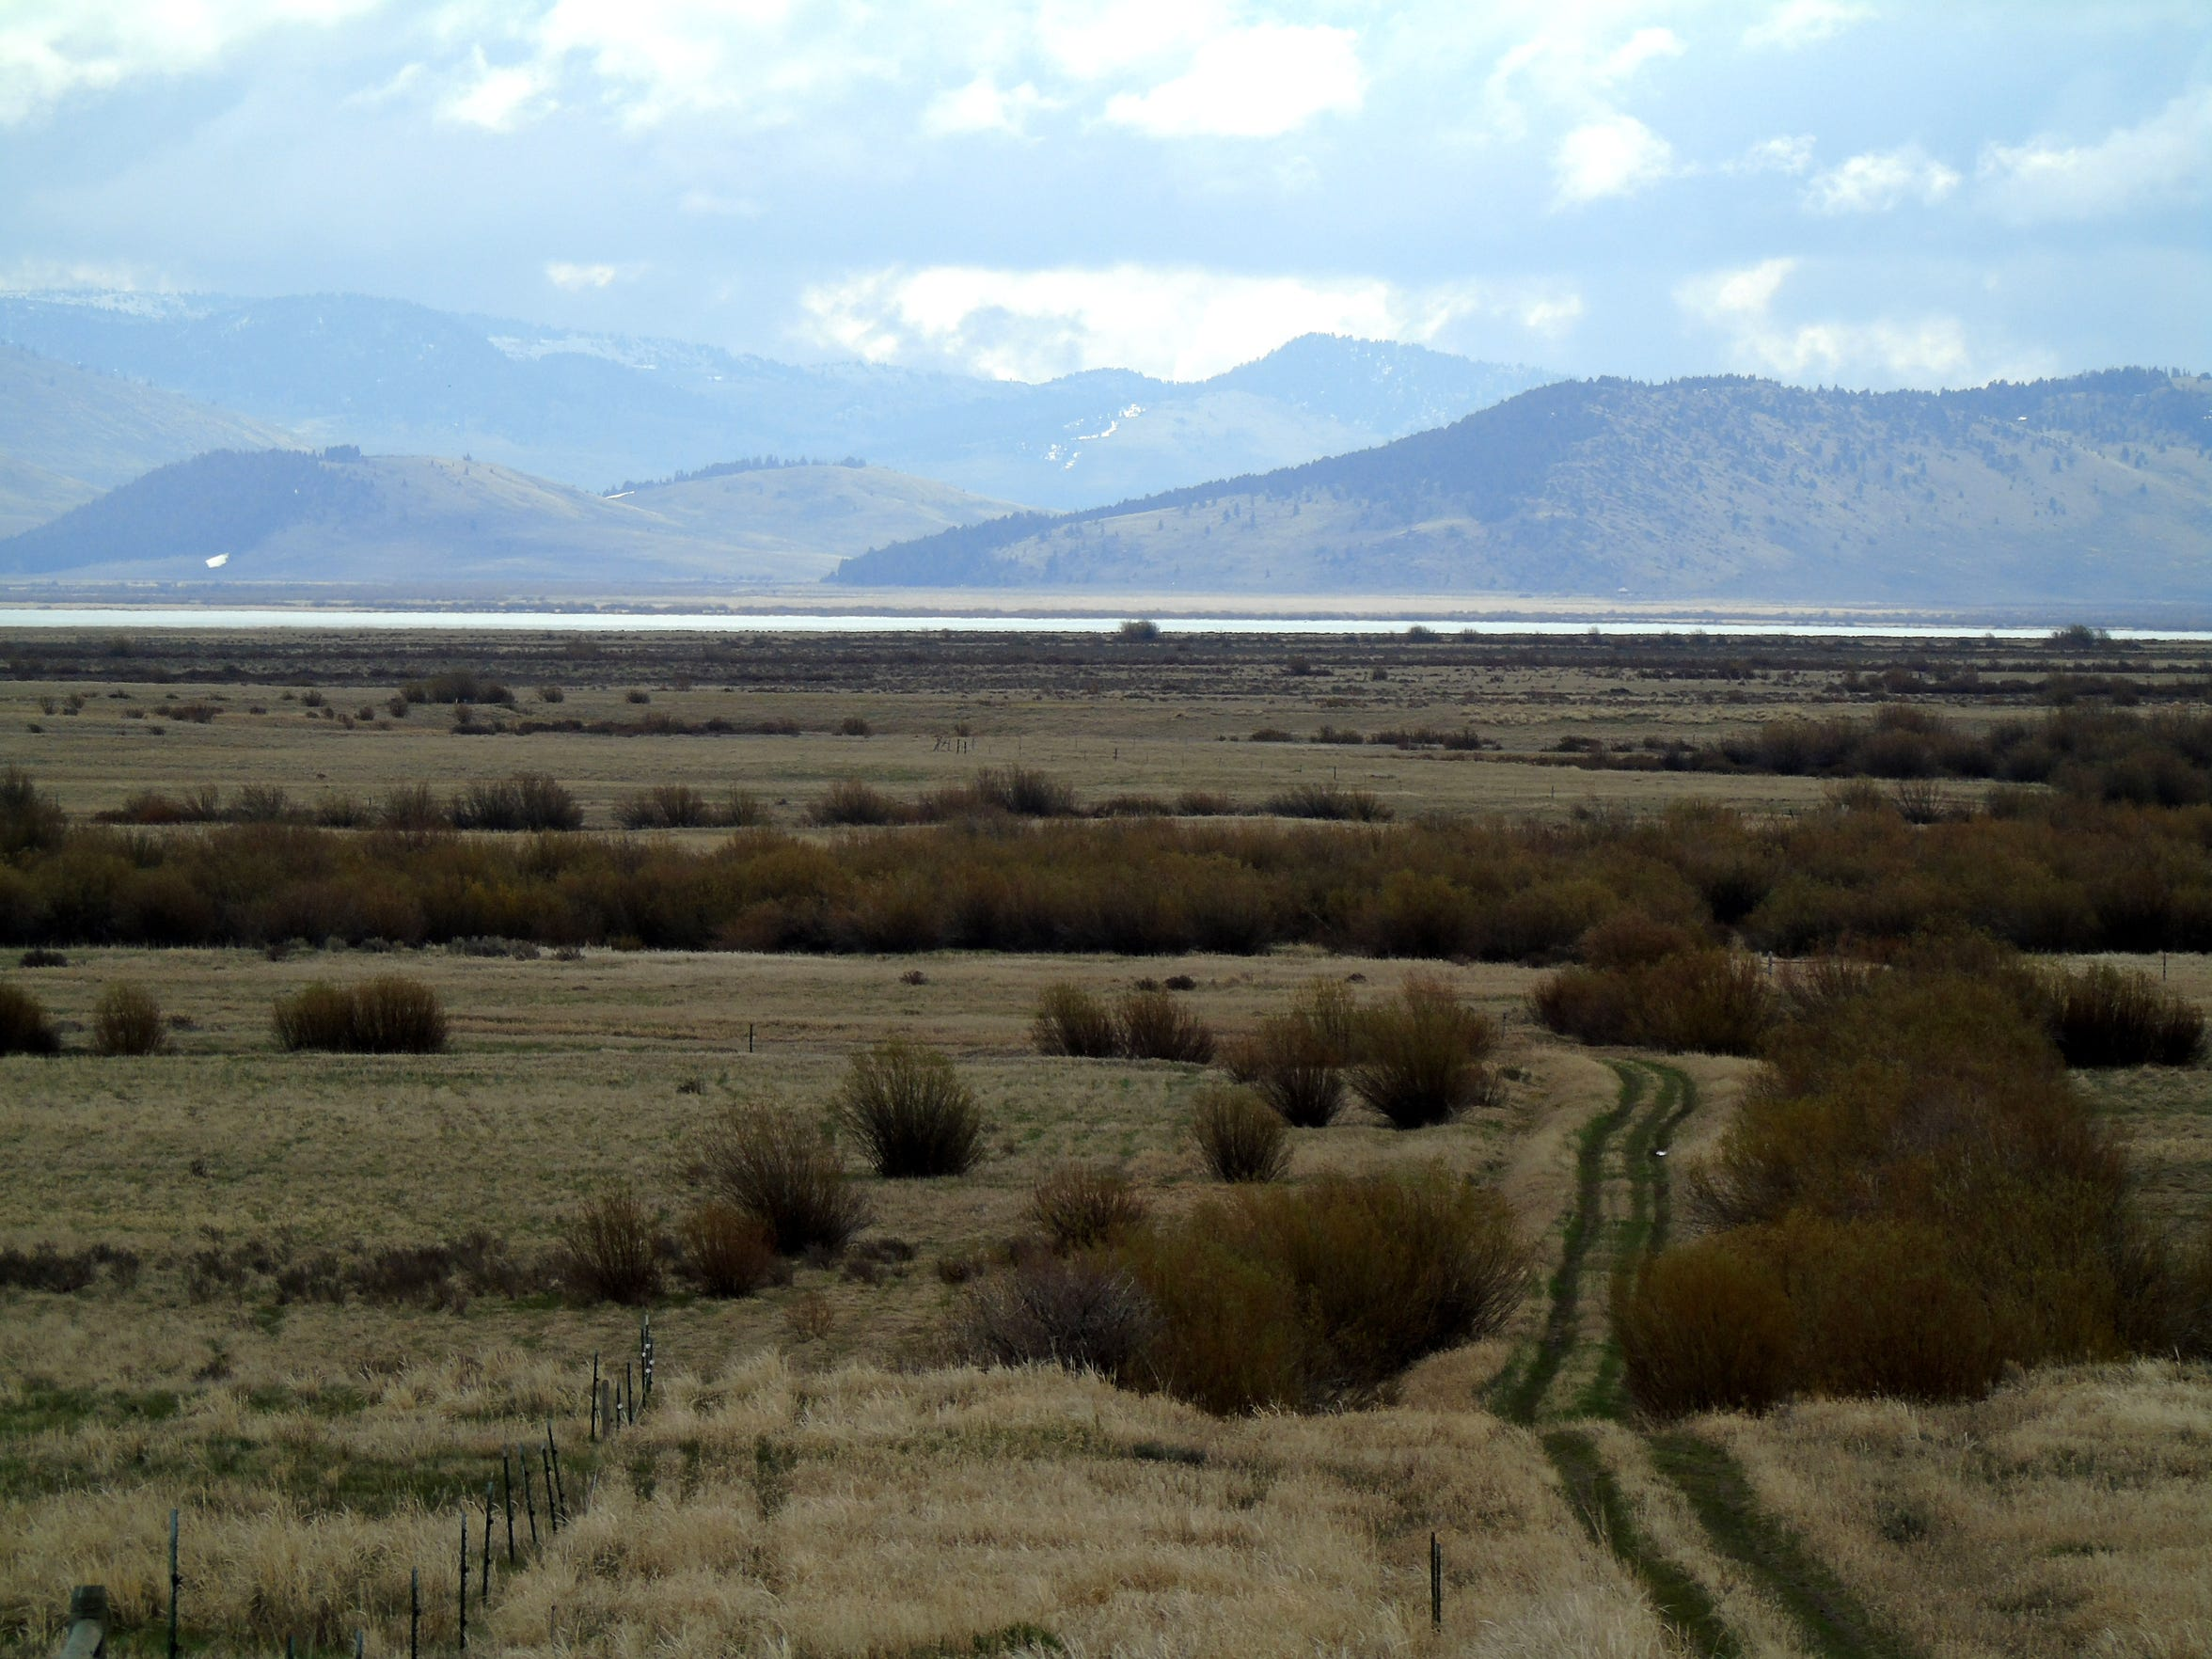 A trail leads into the Red Rock Lakes National Wildlife Refuge in Montana's remote Centennial Valley. Ranching and the refuge are the mainstays of the valley, but backcountry tourism plays a role, too.